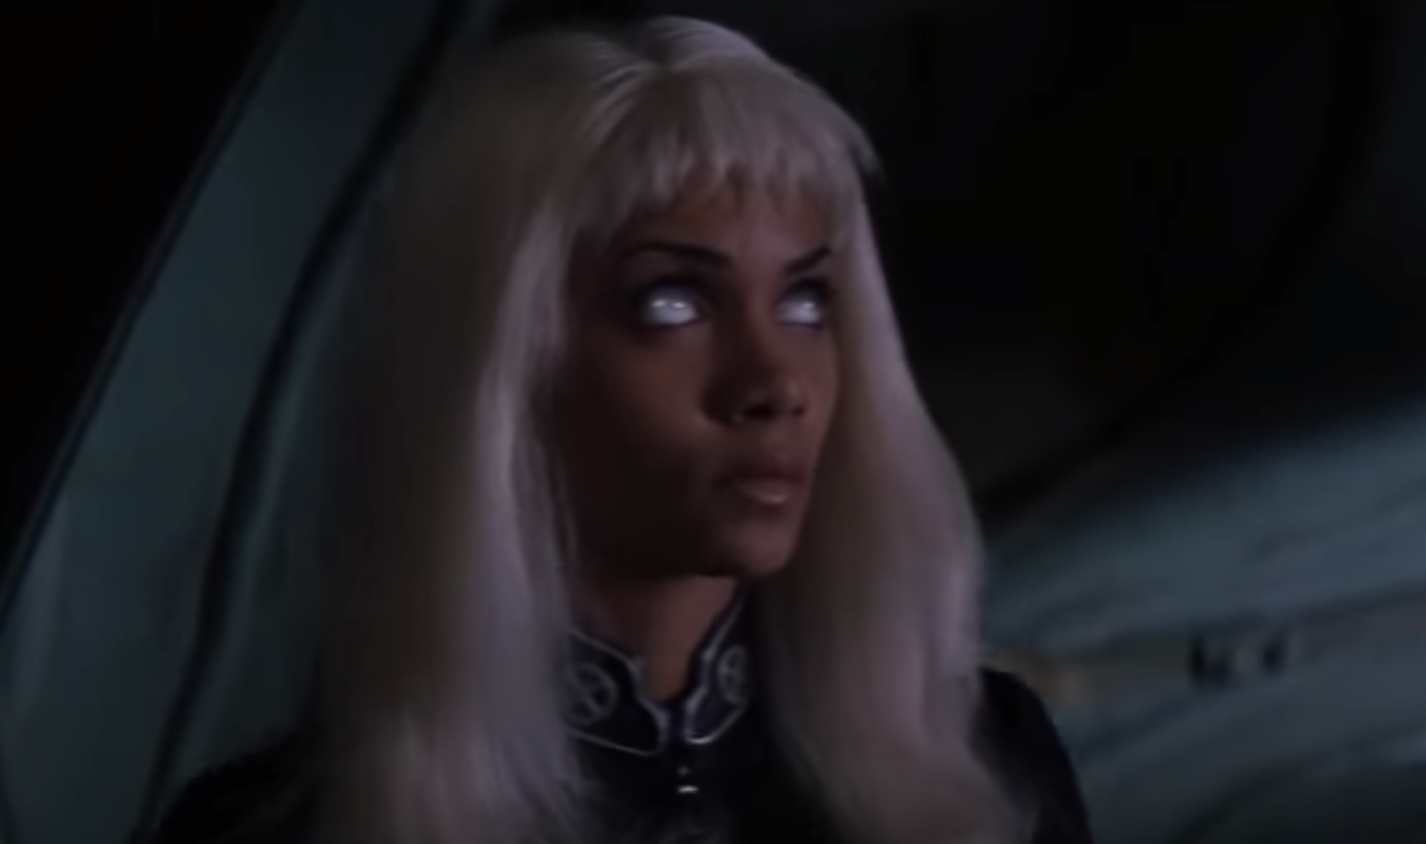 Halle Berry in a white wig with extremely short bangs